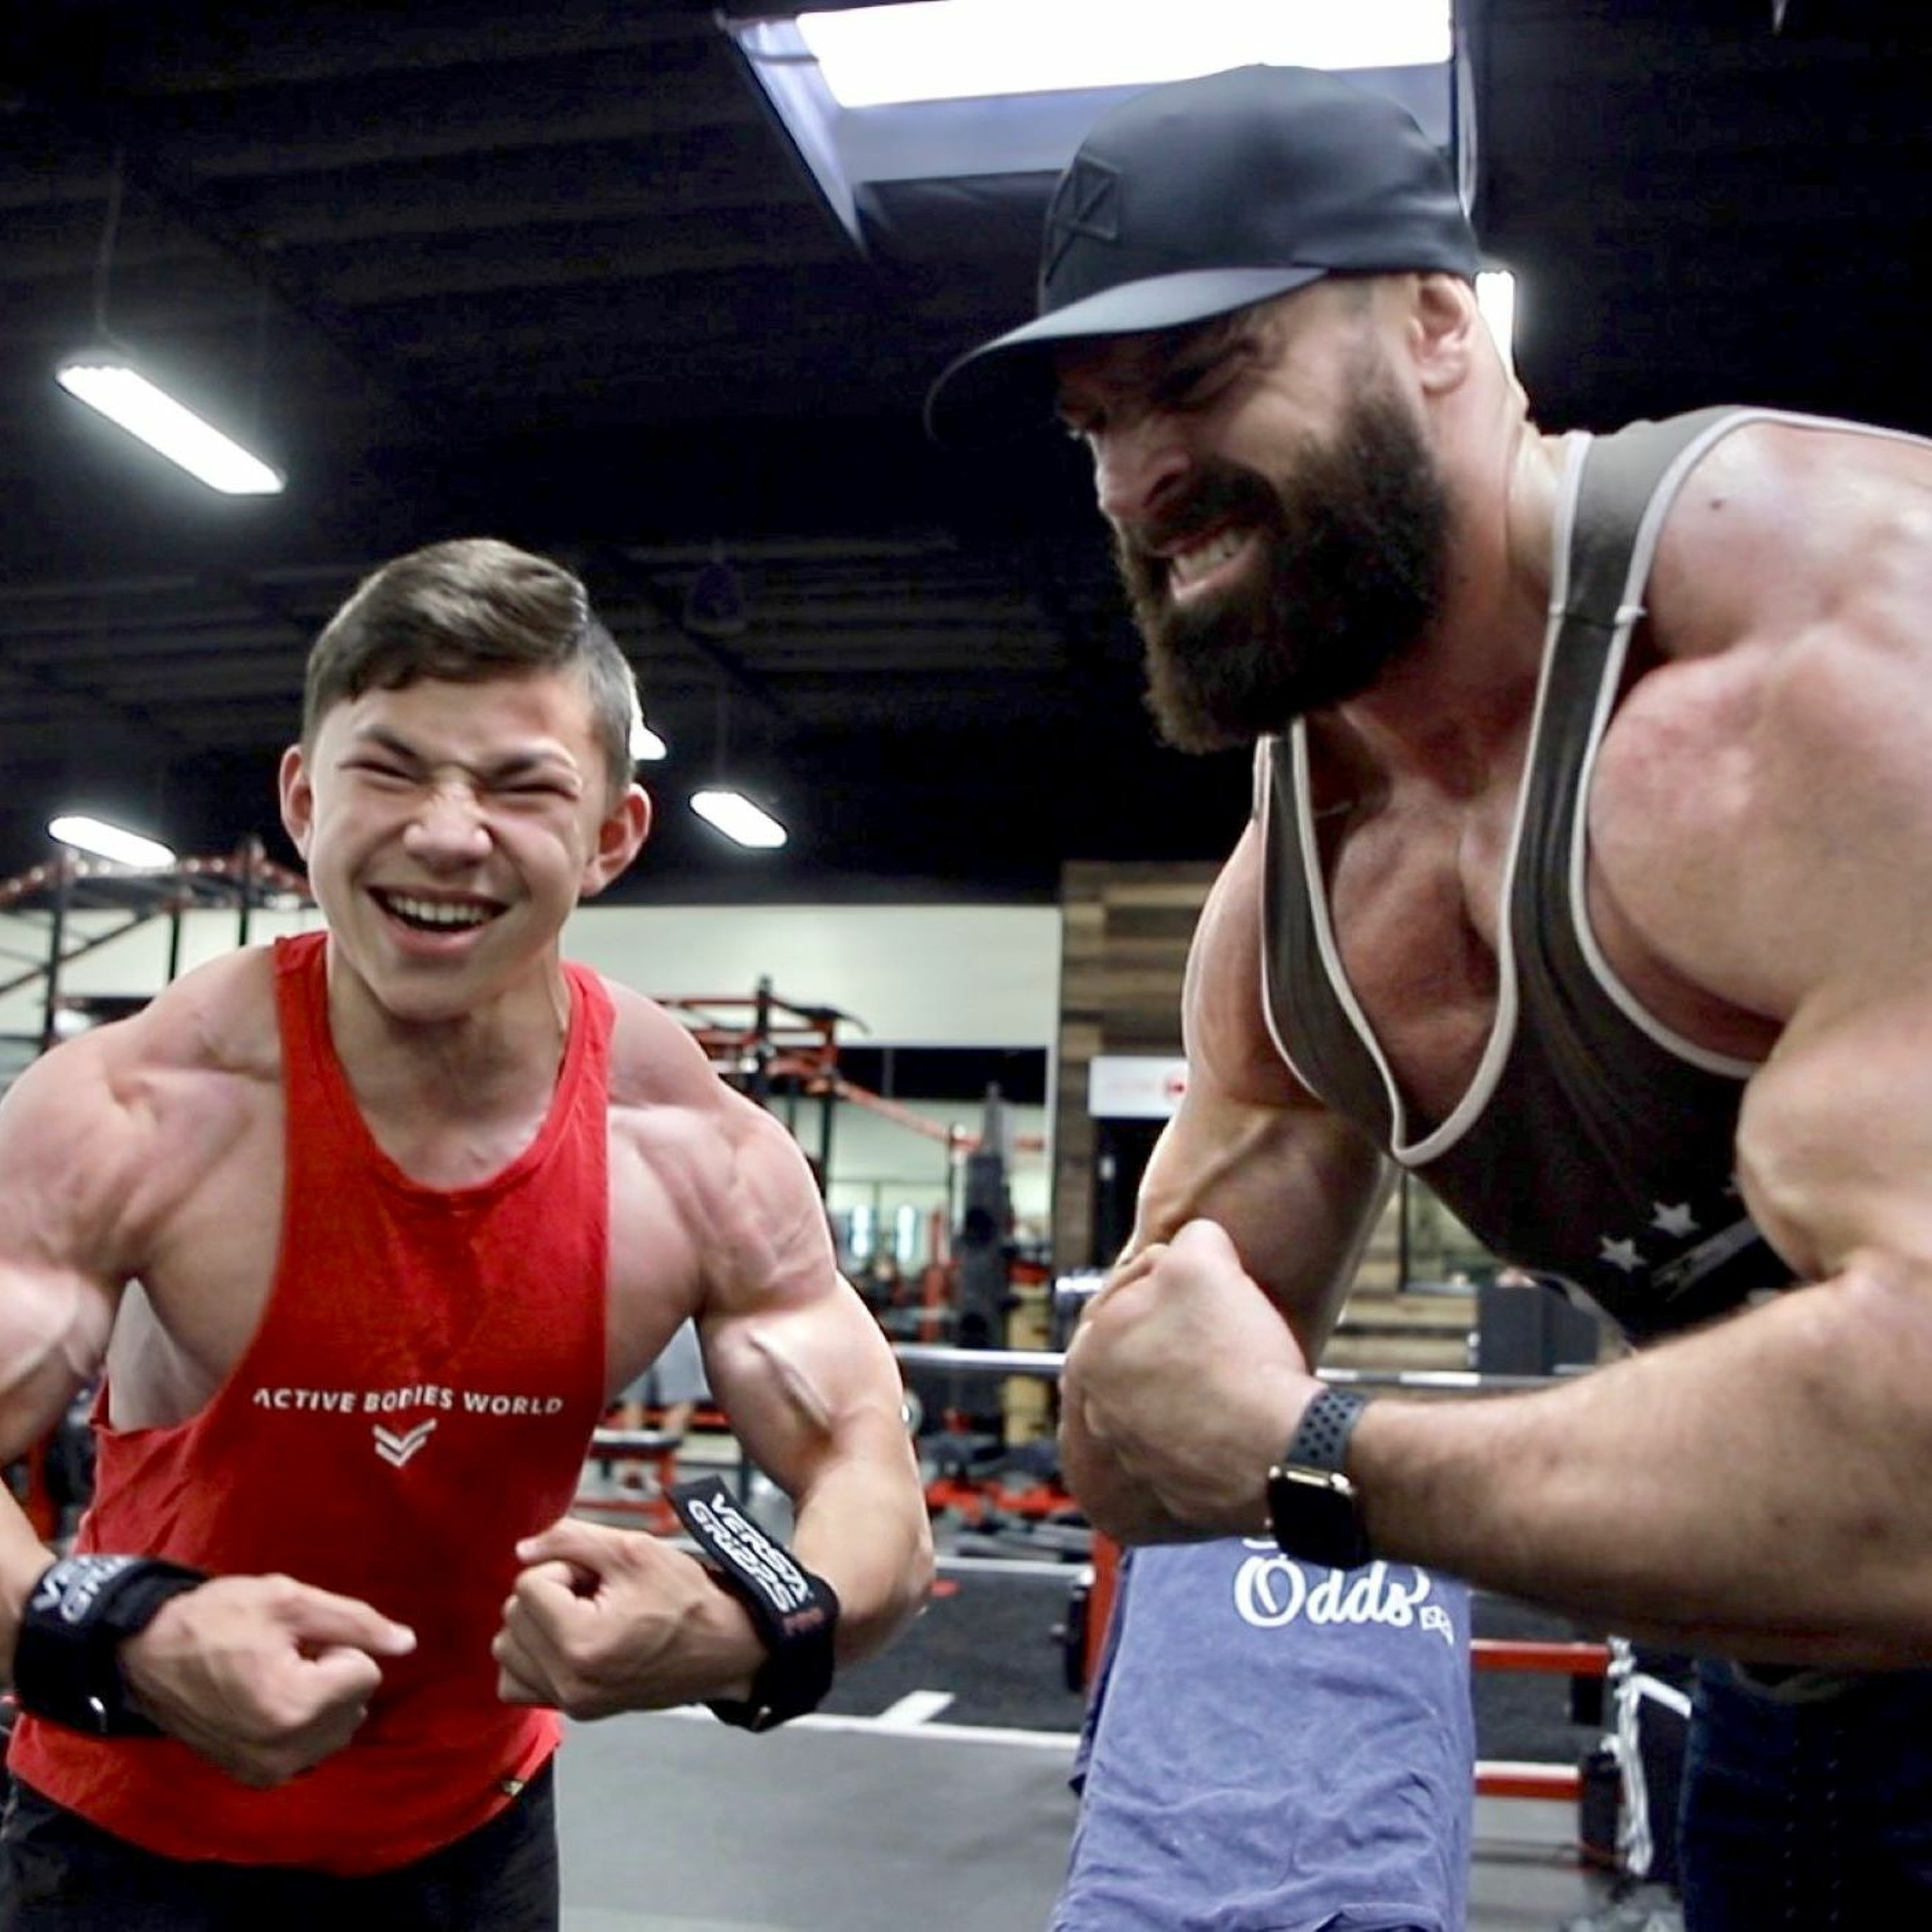 How 16 Year Old Tristyn Lee Got Shredded The Truth Culture Cast Podcast Podtail 5,863 likes · 42 talking about this. podtail